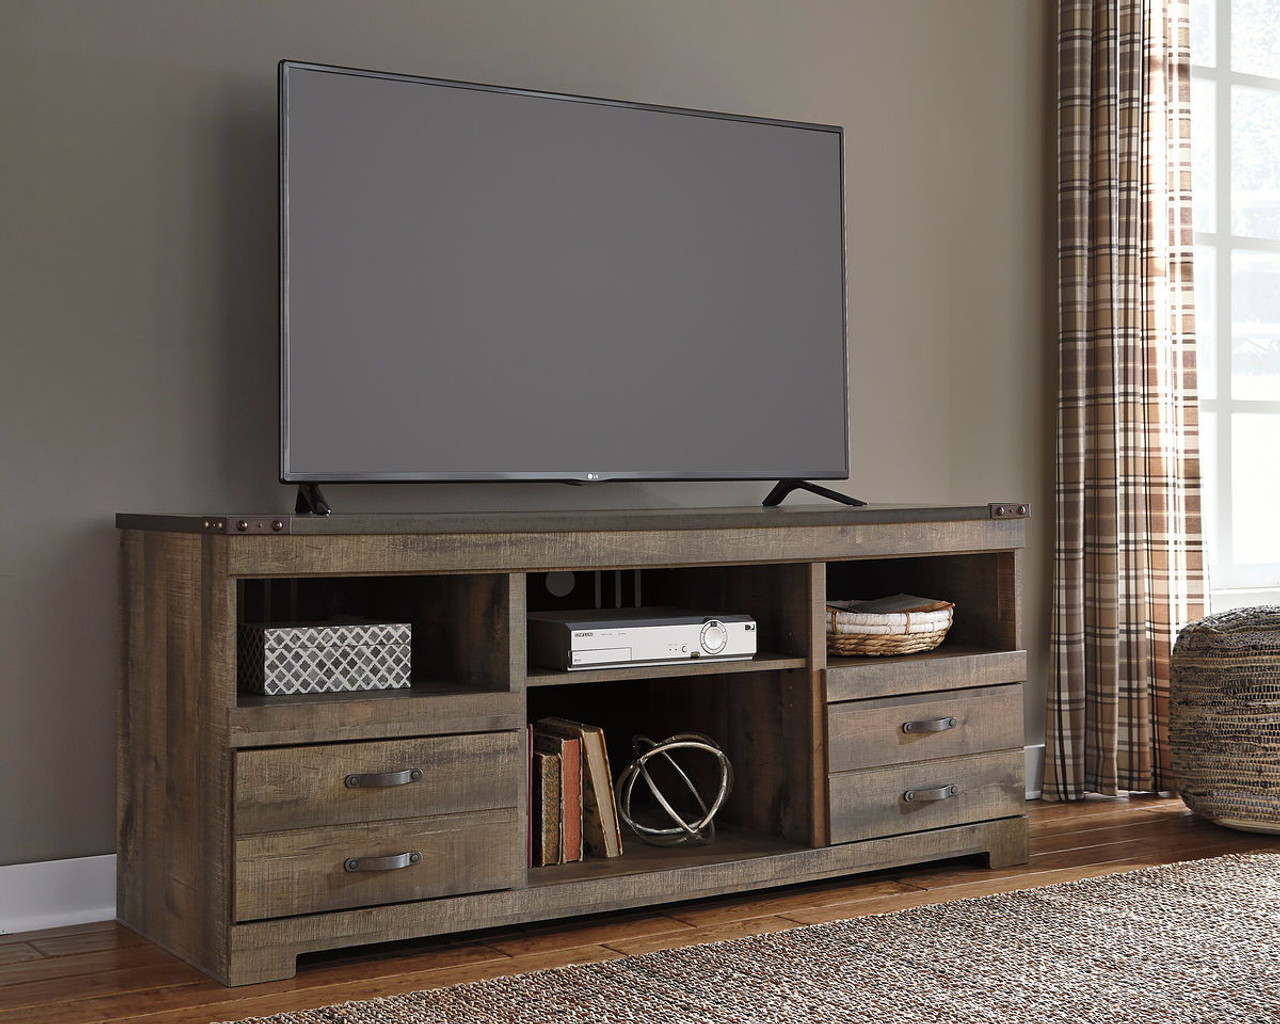 The Trinell Brown Lg Tv Stand W Fireplace Option Available At 5